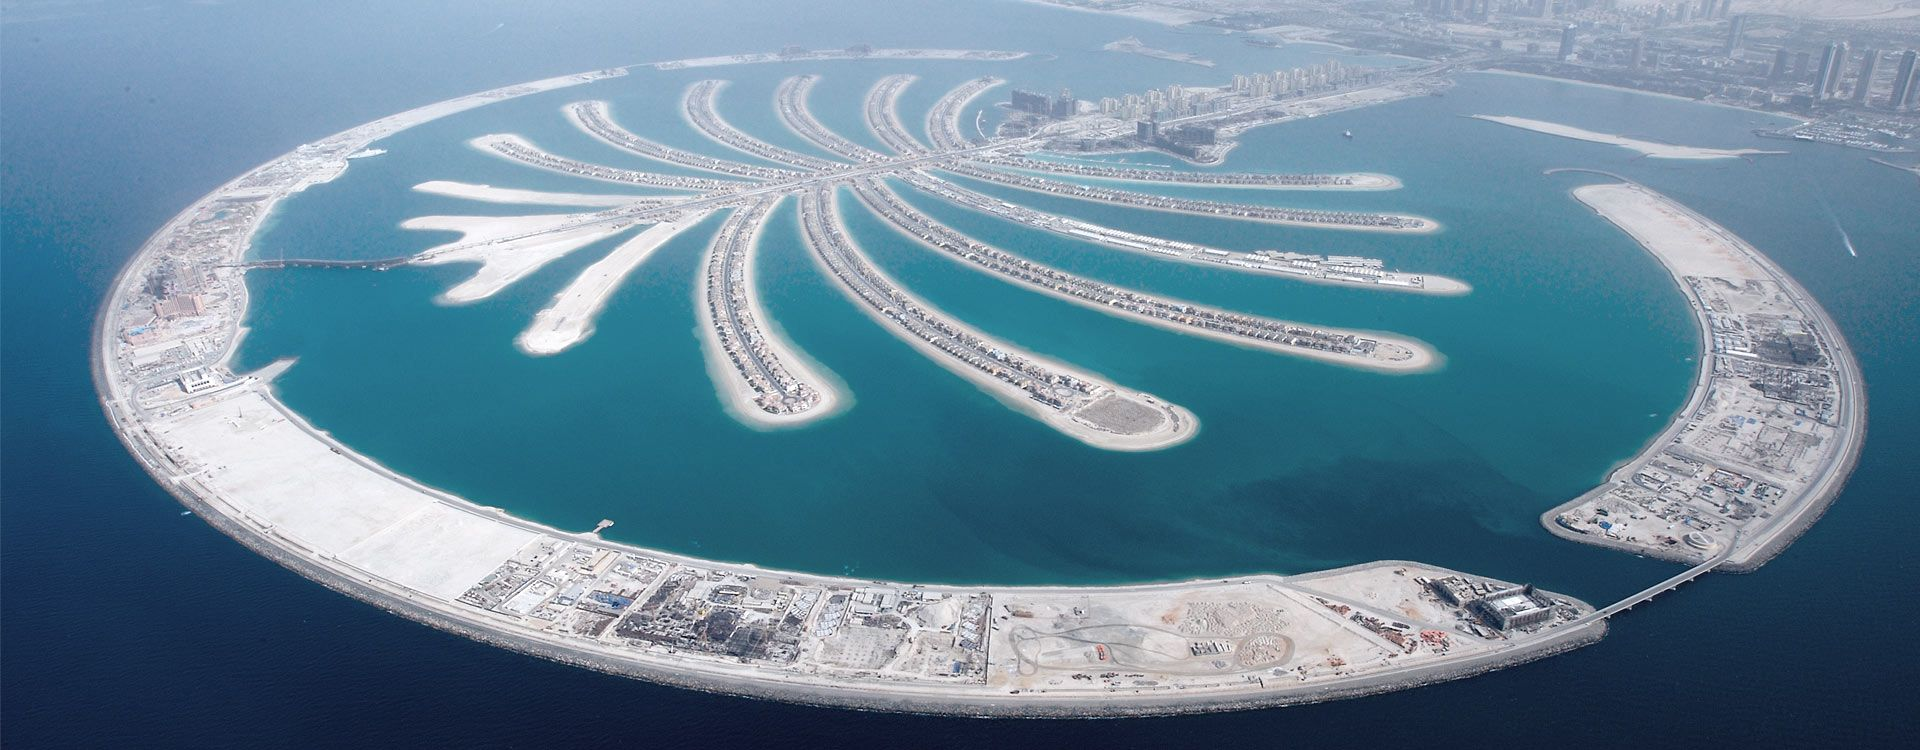 bnr-Palm-Jumeirah_Project-Delivery